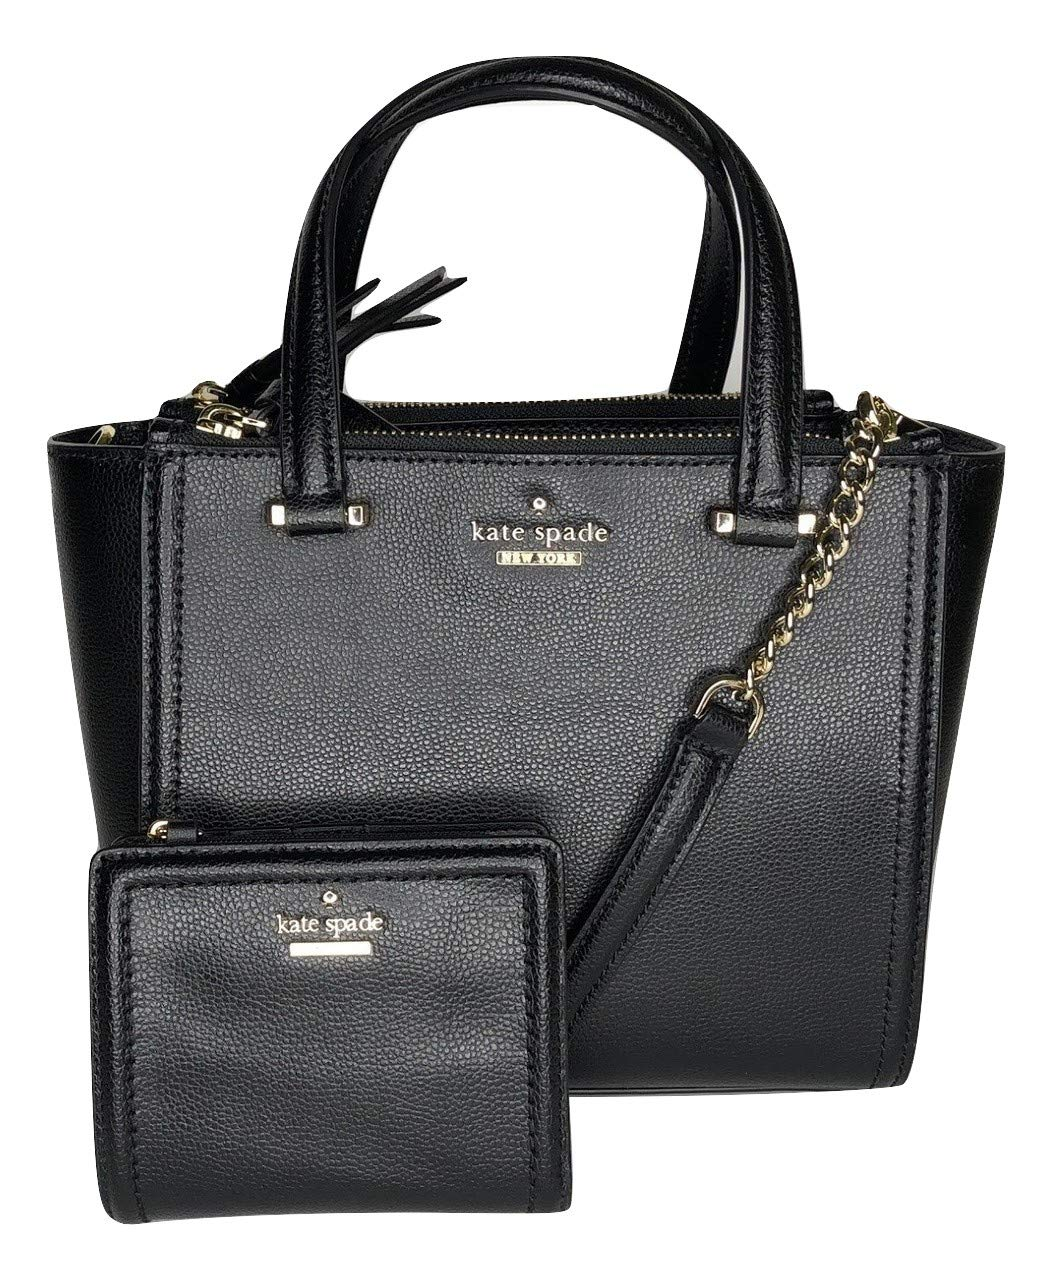 Kate Spade New York Patterson Drive Mini Kona WKRU5650 bundled with matching Kate Spade New York Patterson Drive Small Shawn WLRU5156 (Black)